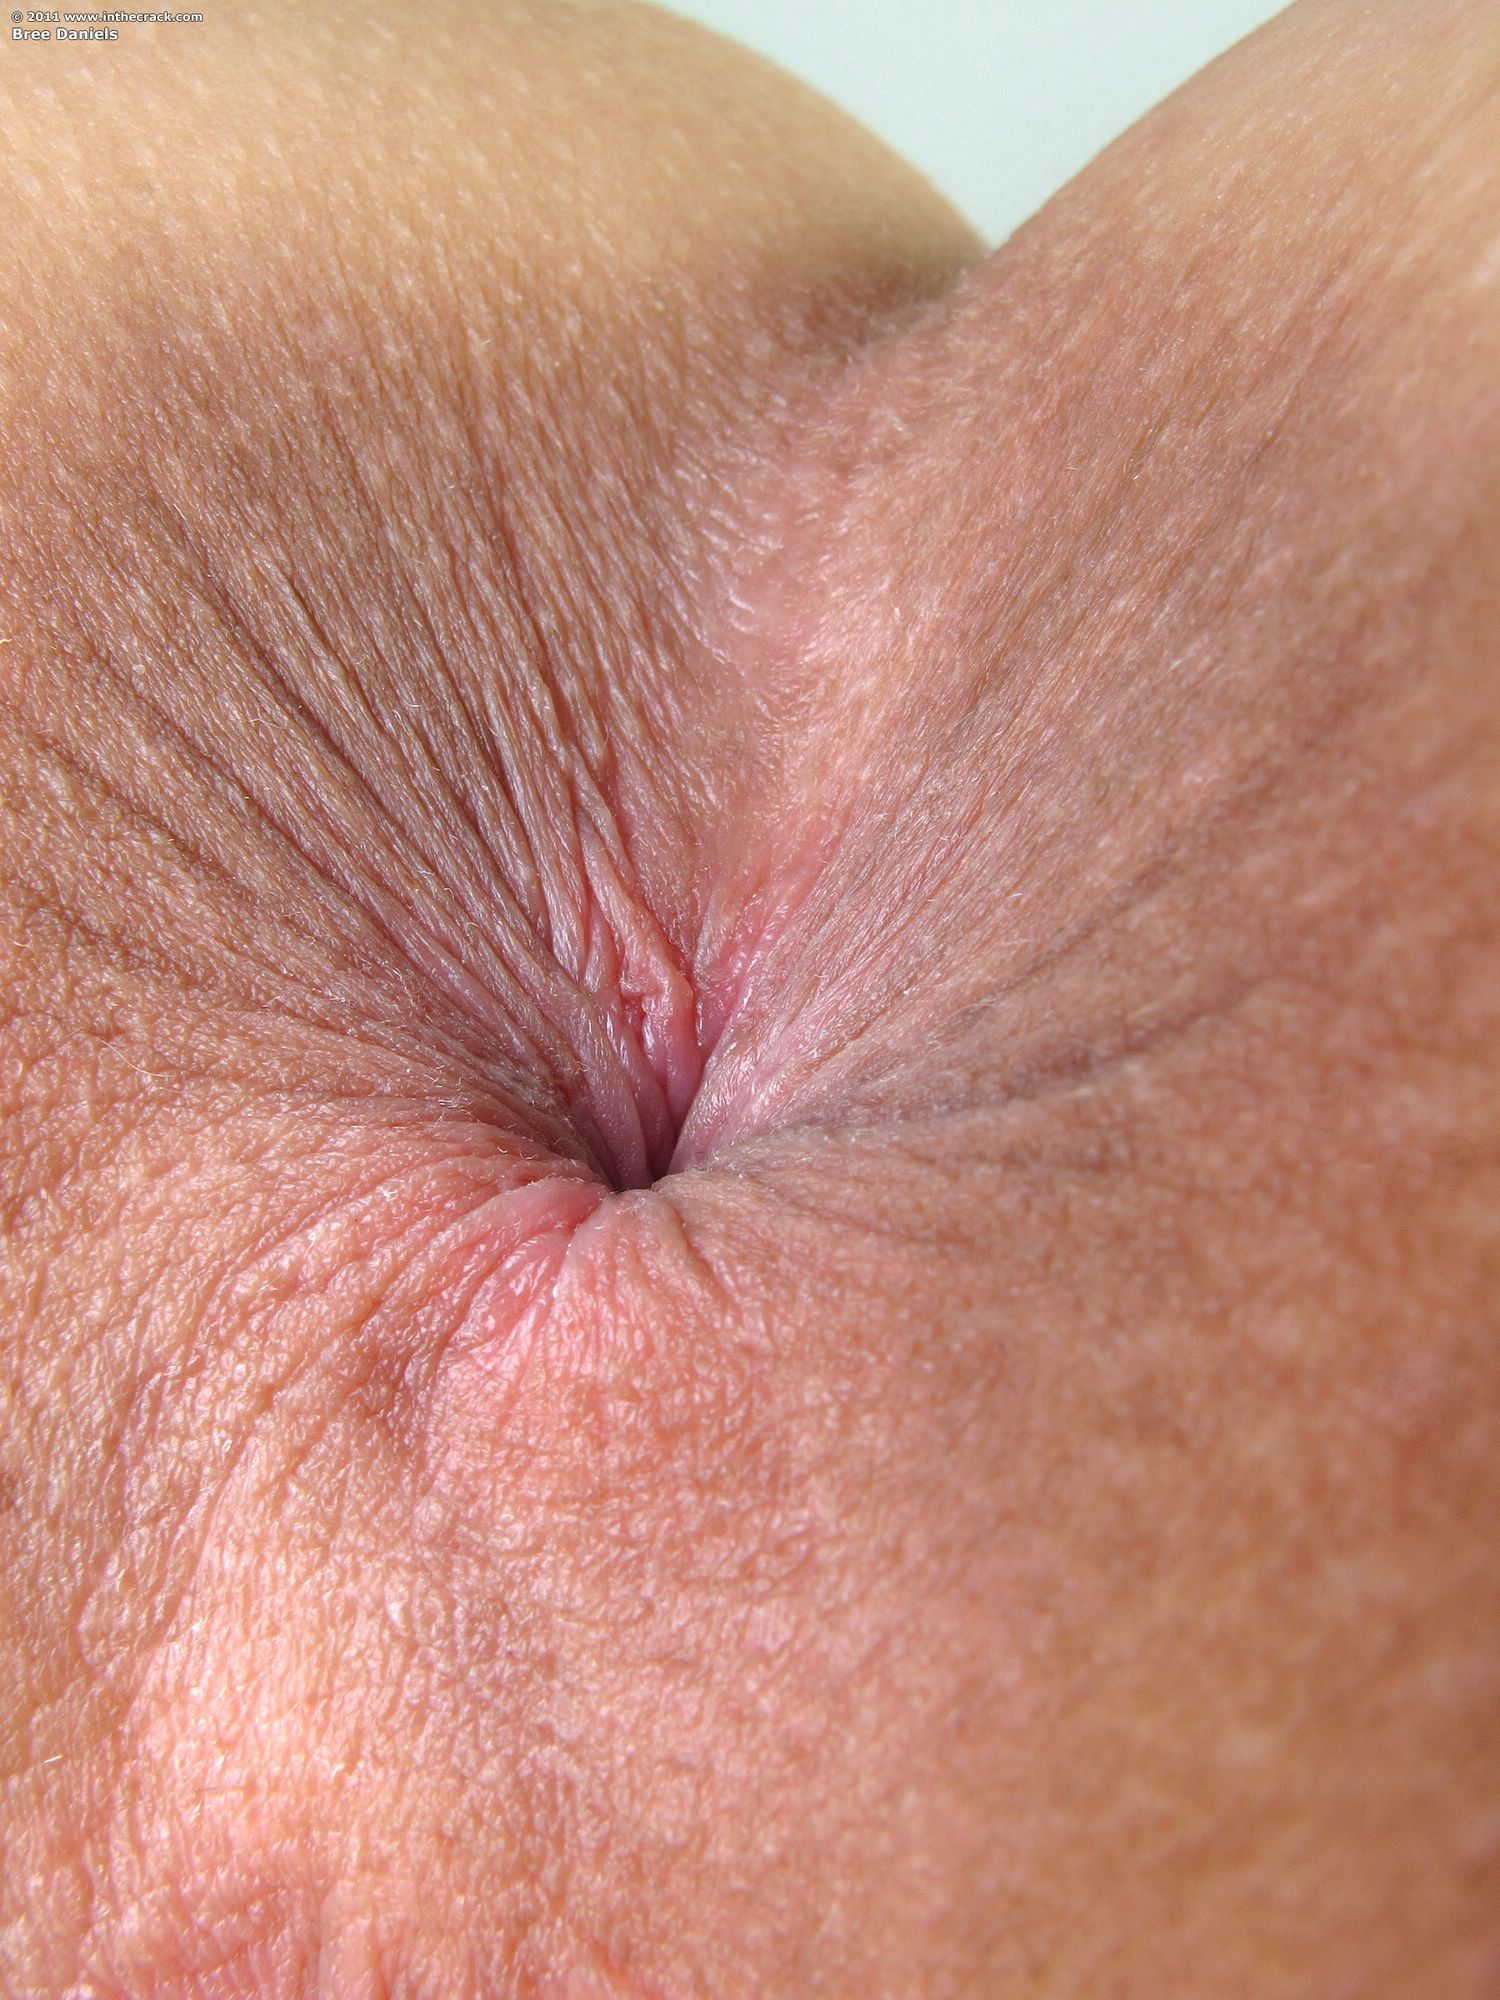 Thought differently, nude girls pussy closeup